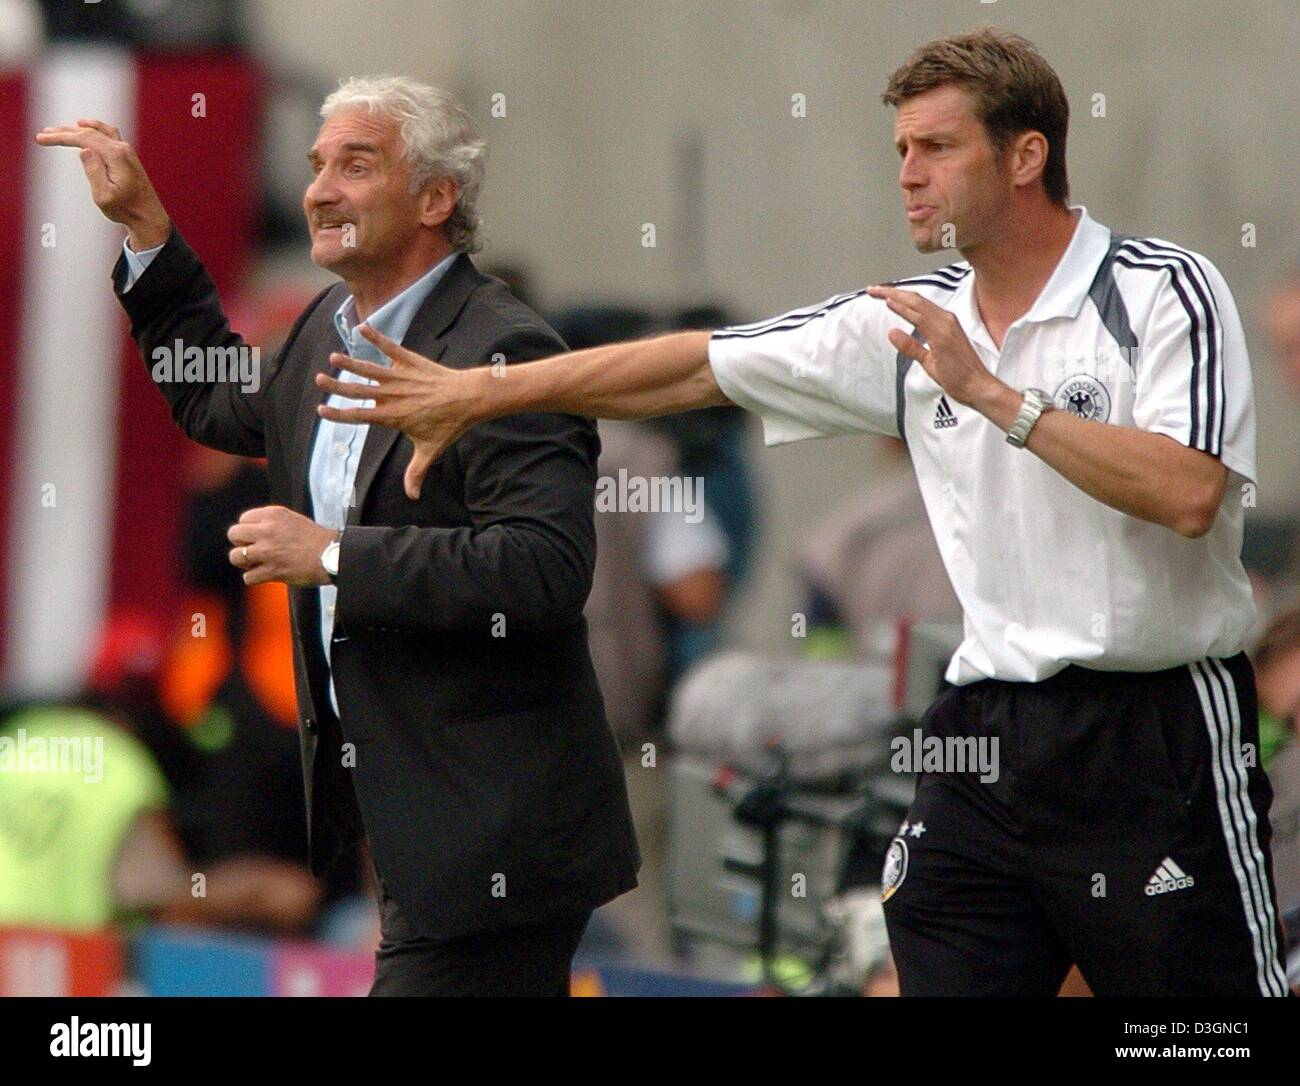 (dpa) - German head coach Rudi Voeller (L) and his assistant Michael Skibbe gesture on the sidelines. The German - Stock Image